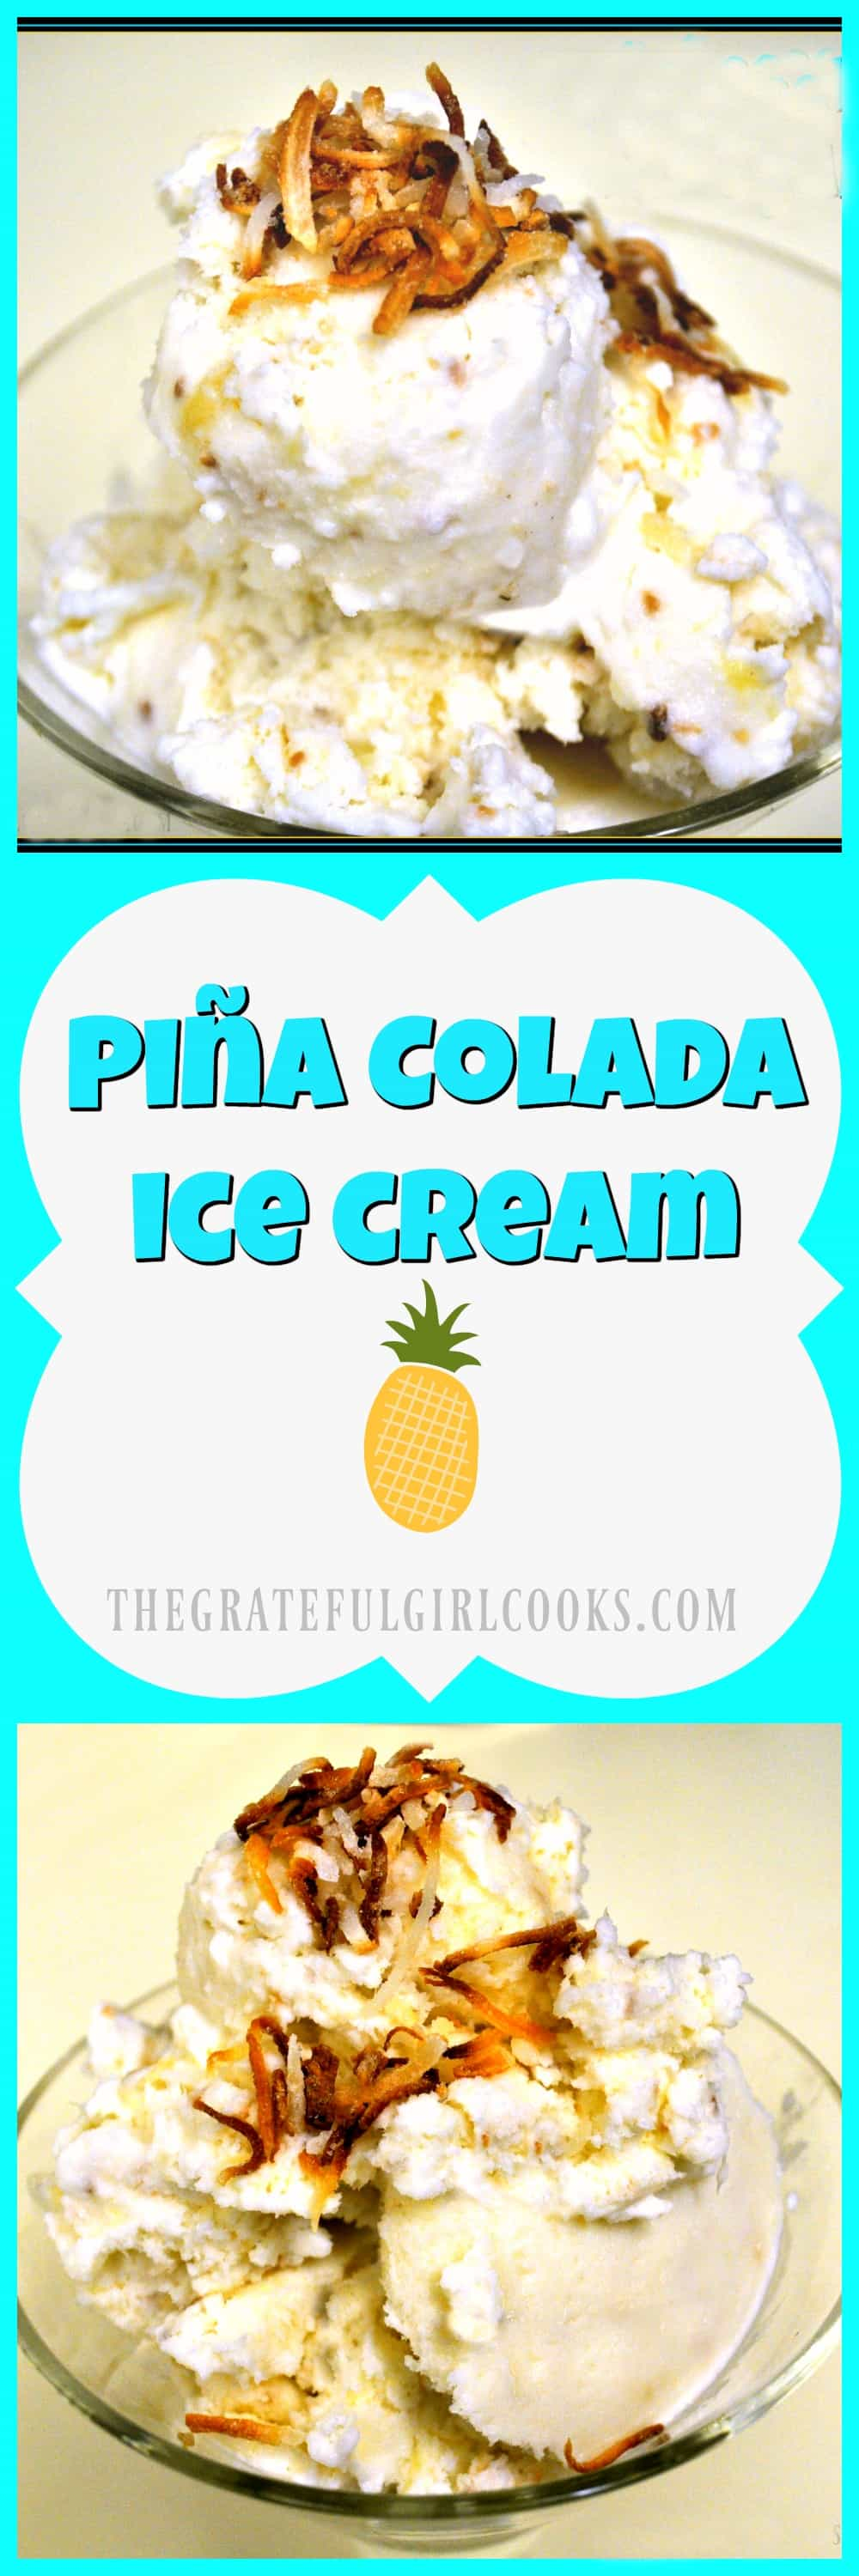 Piña Colada Ice Cream / The Grateful Girl Cooks!